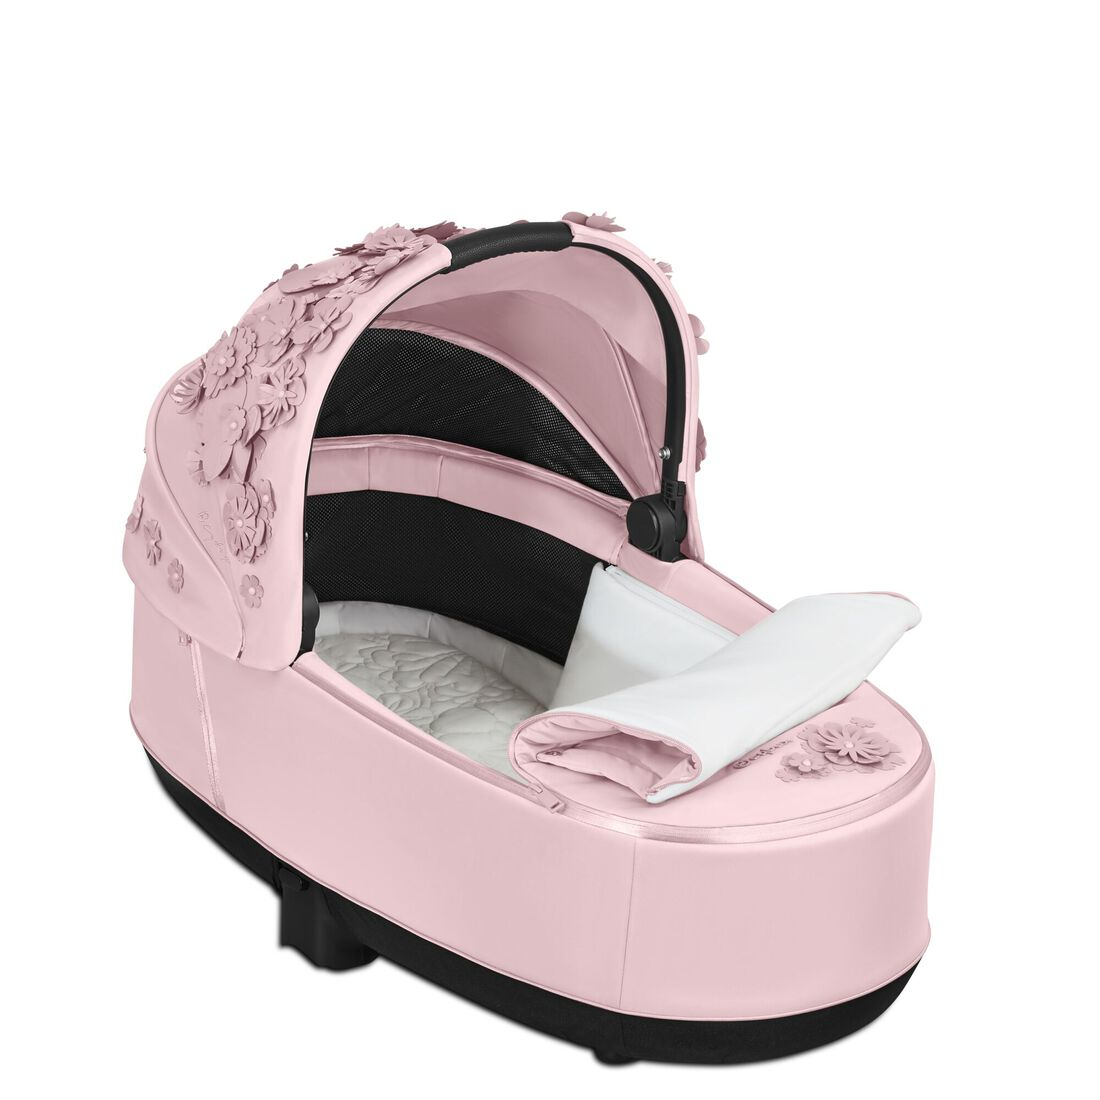 CYBEX Priam Lux Carry Cot - Pale Blush in Pale Blush large image number 3